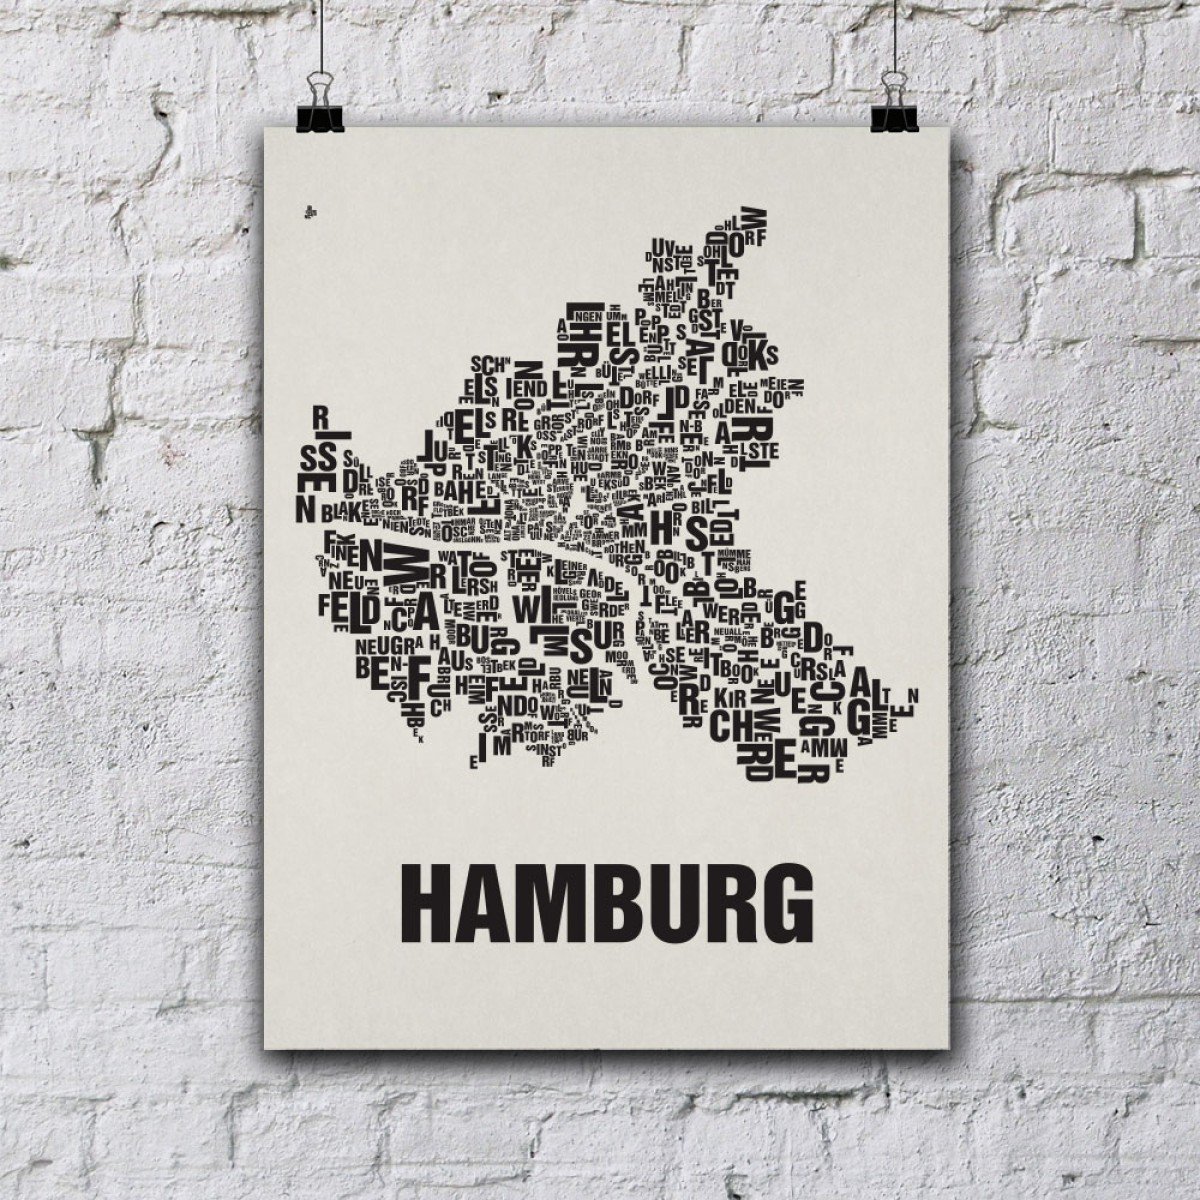 buchstabenort hamburg stadtteile poster typografie. Black Bedroom Furniture Sets. Home Design Ideas